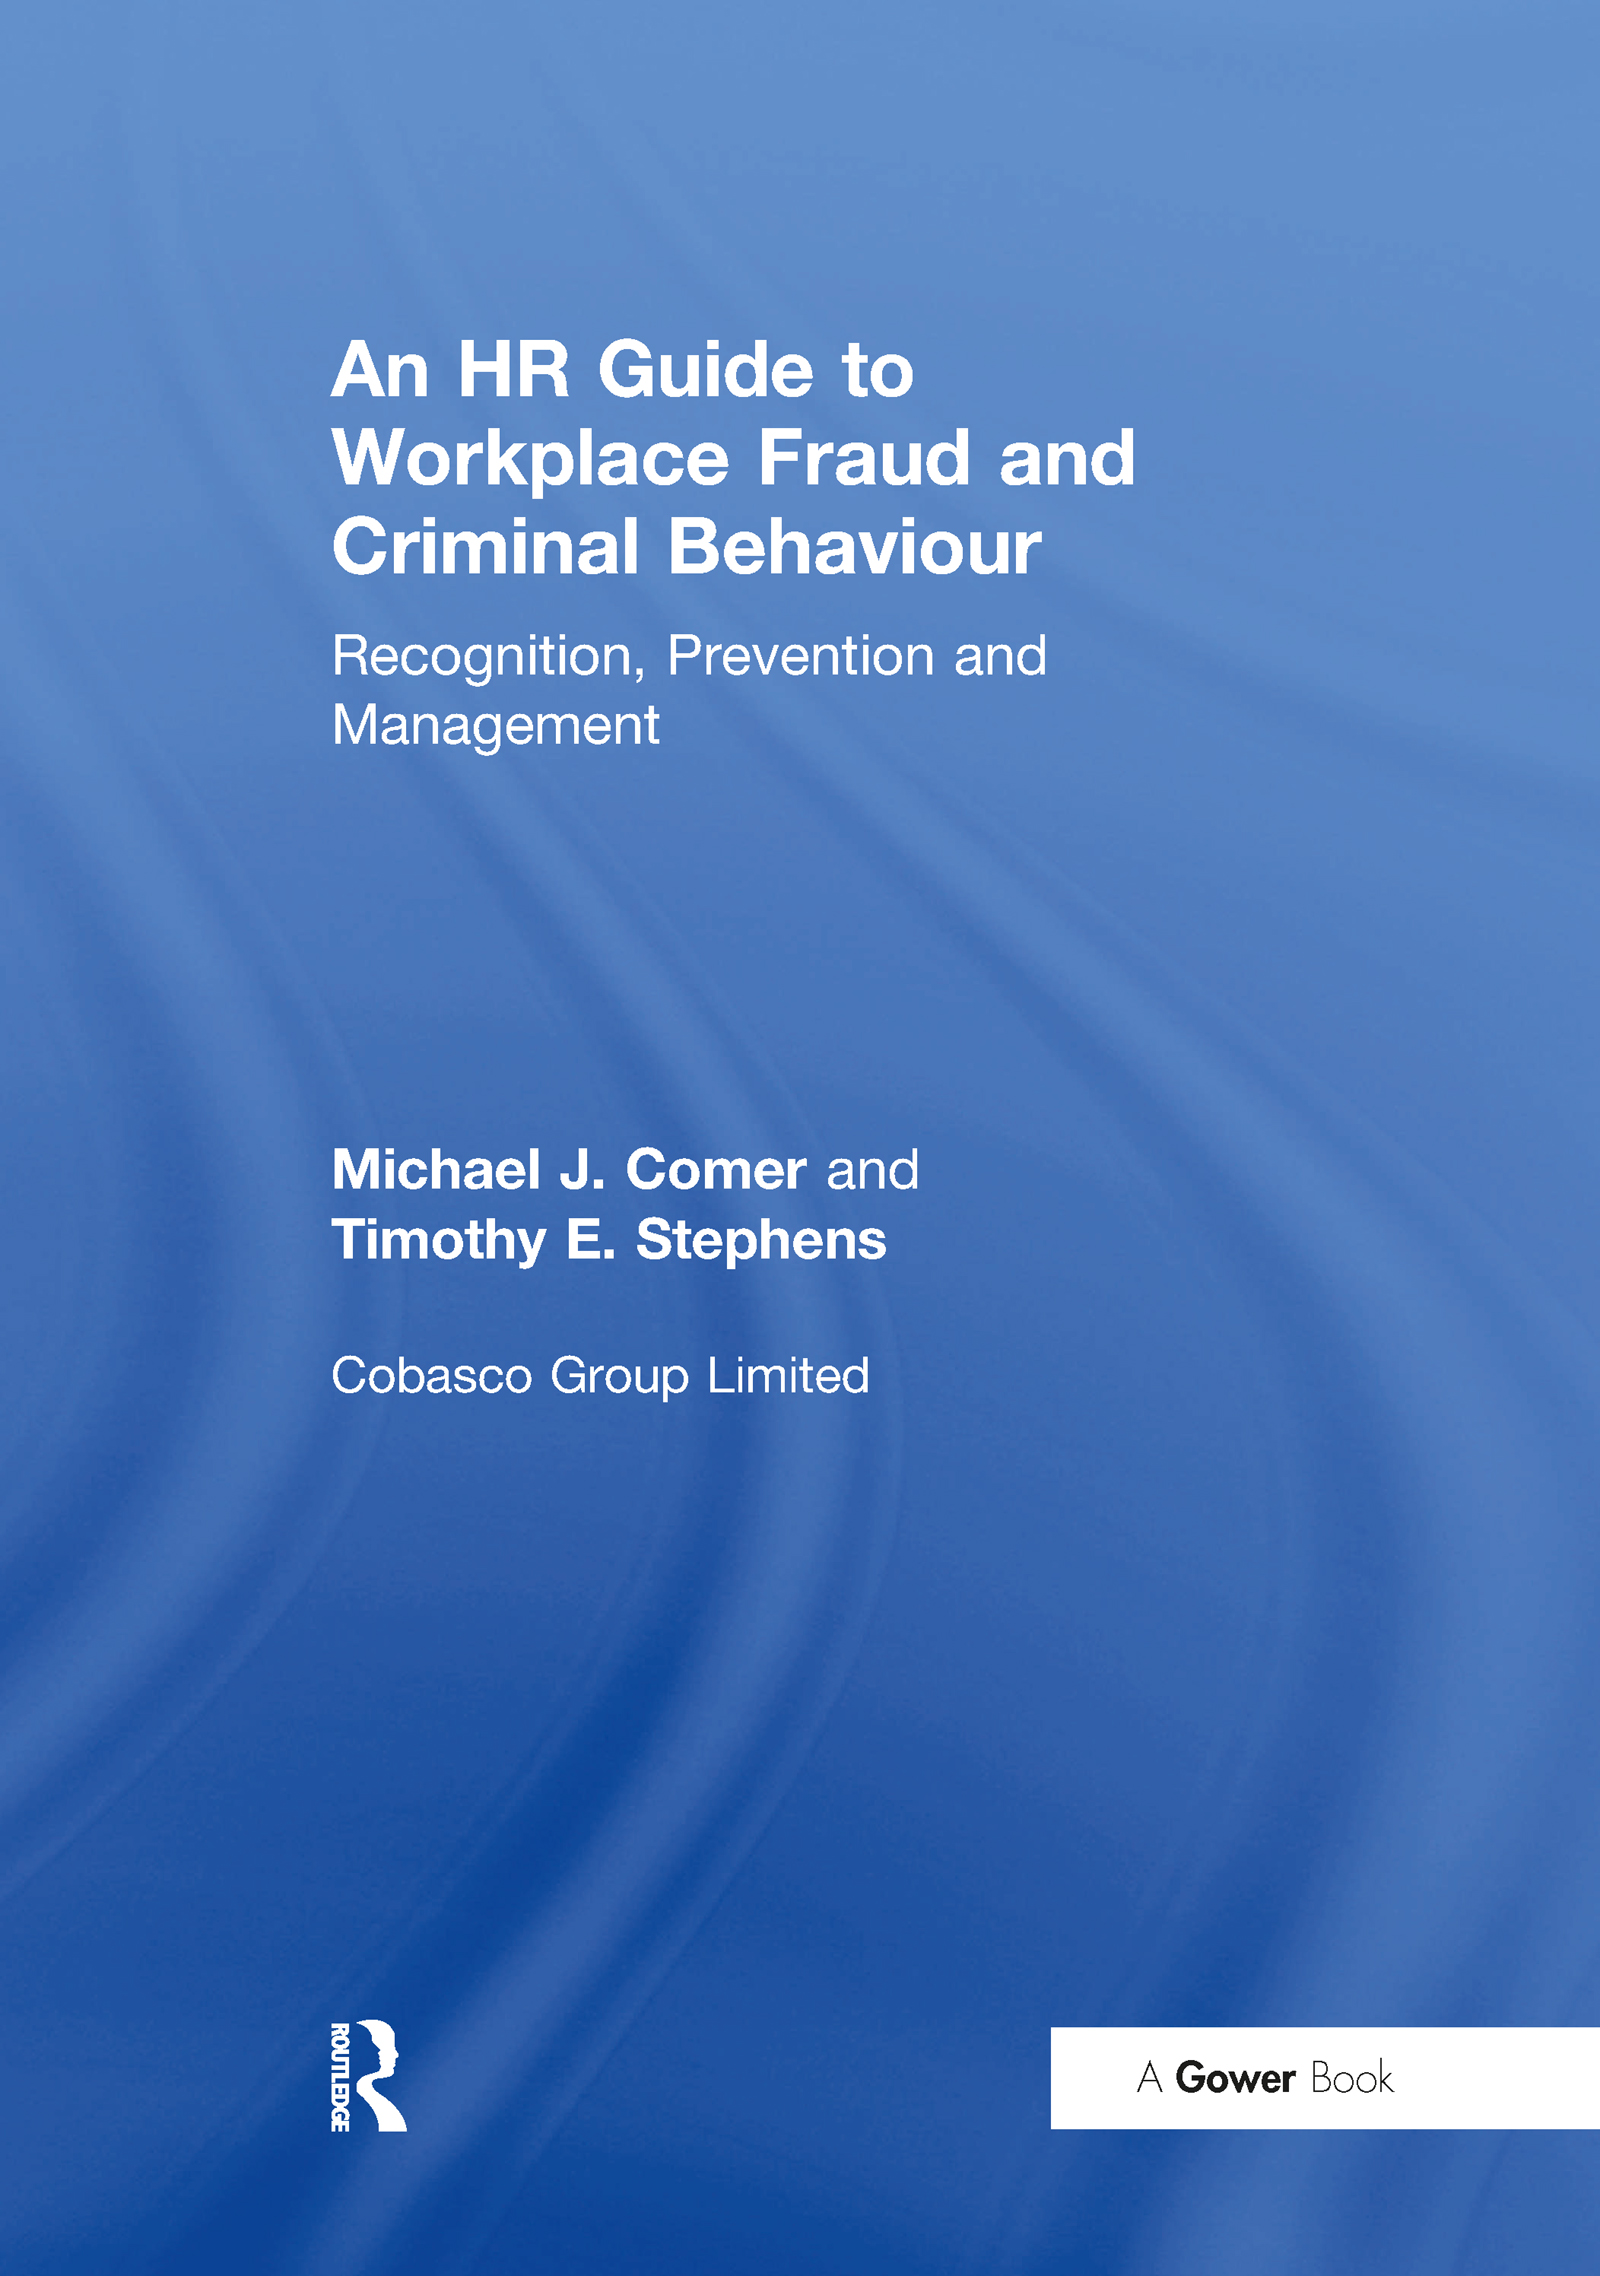 An HR Guide to Workplace Fraud and Criminal Behaviour: Recognition, Prevention and Management book cover